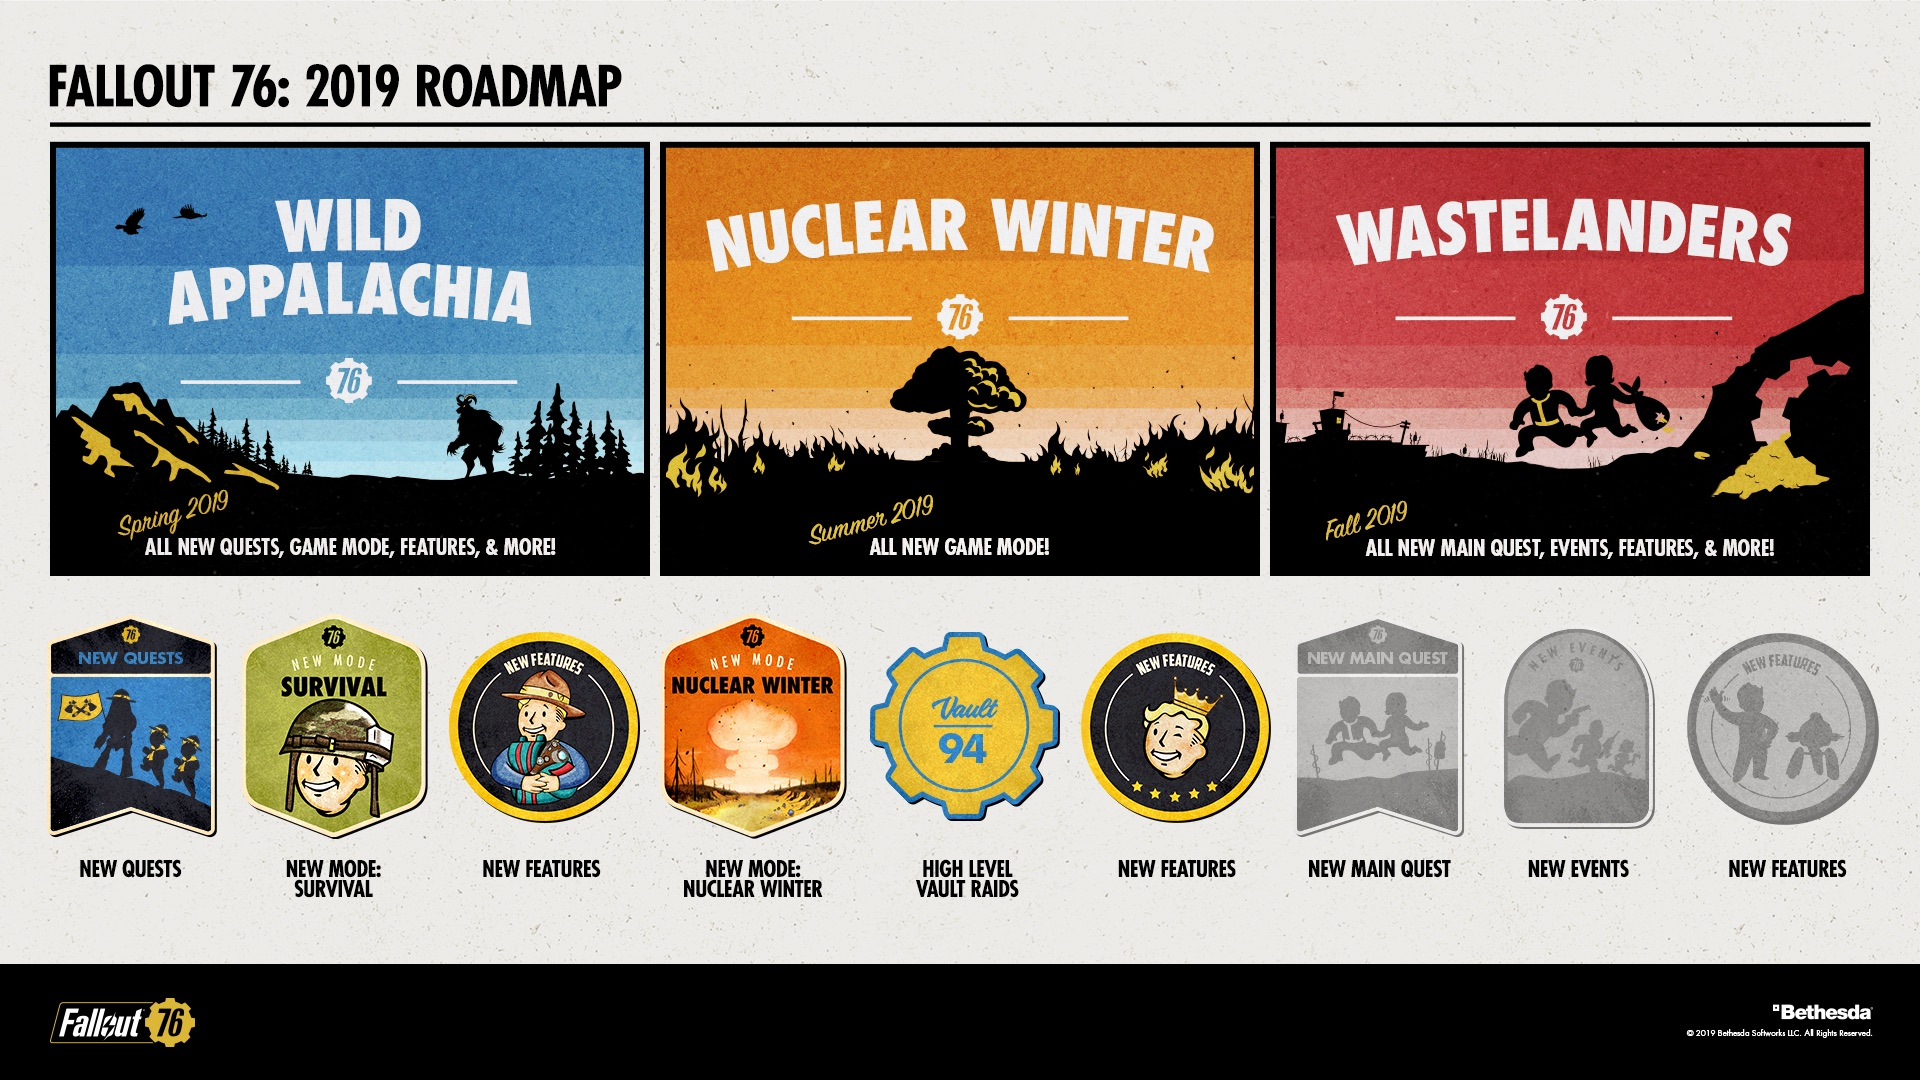 Whats in Store for Fallout 76 - 2019 Roadmap - picture #2